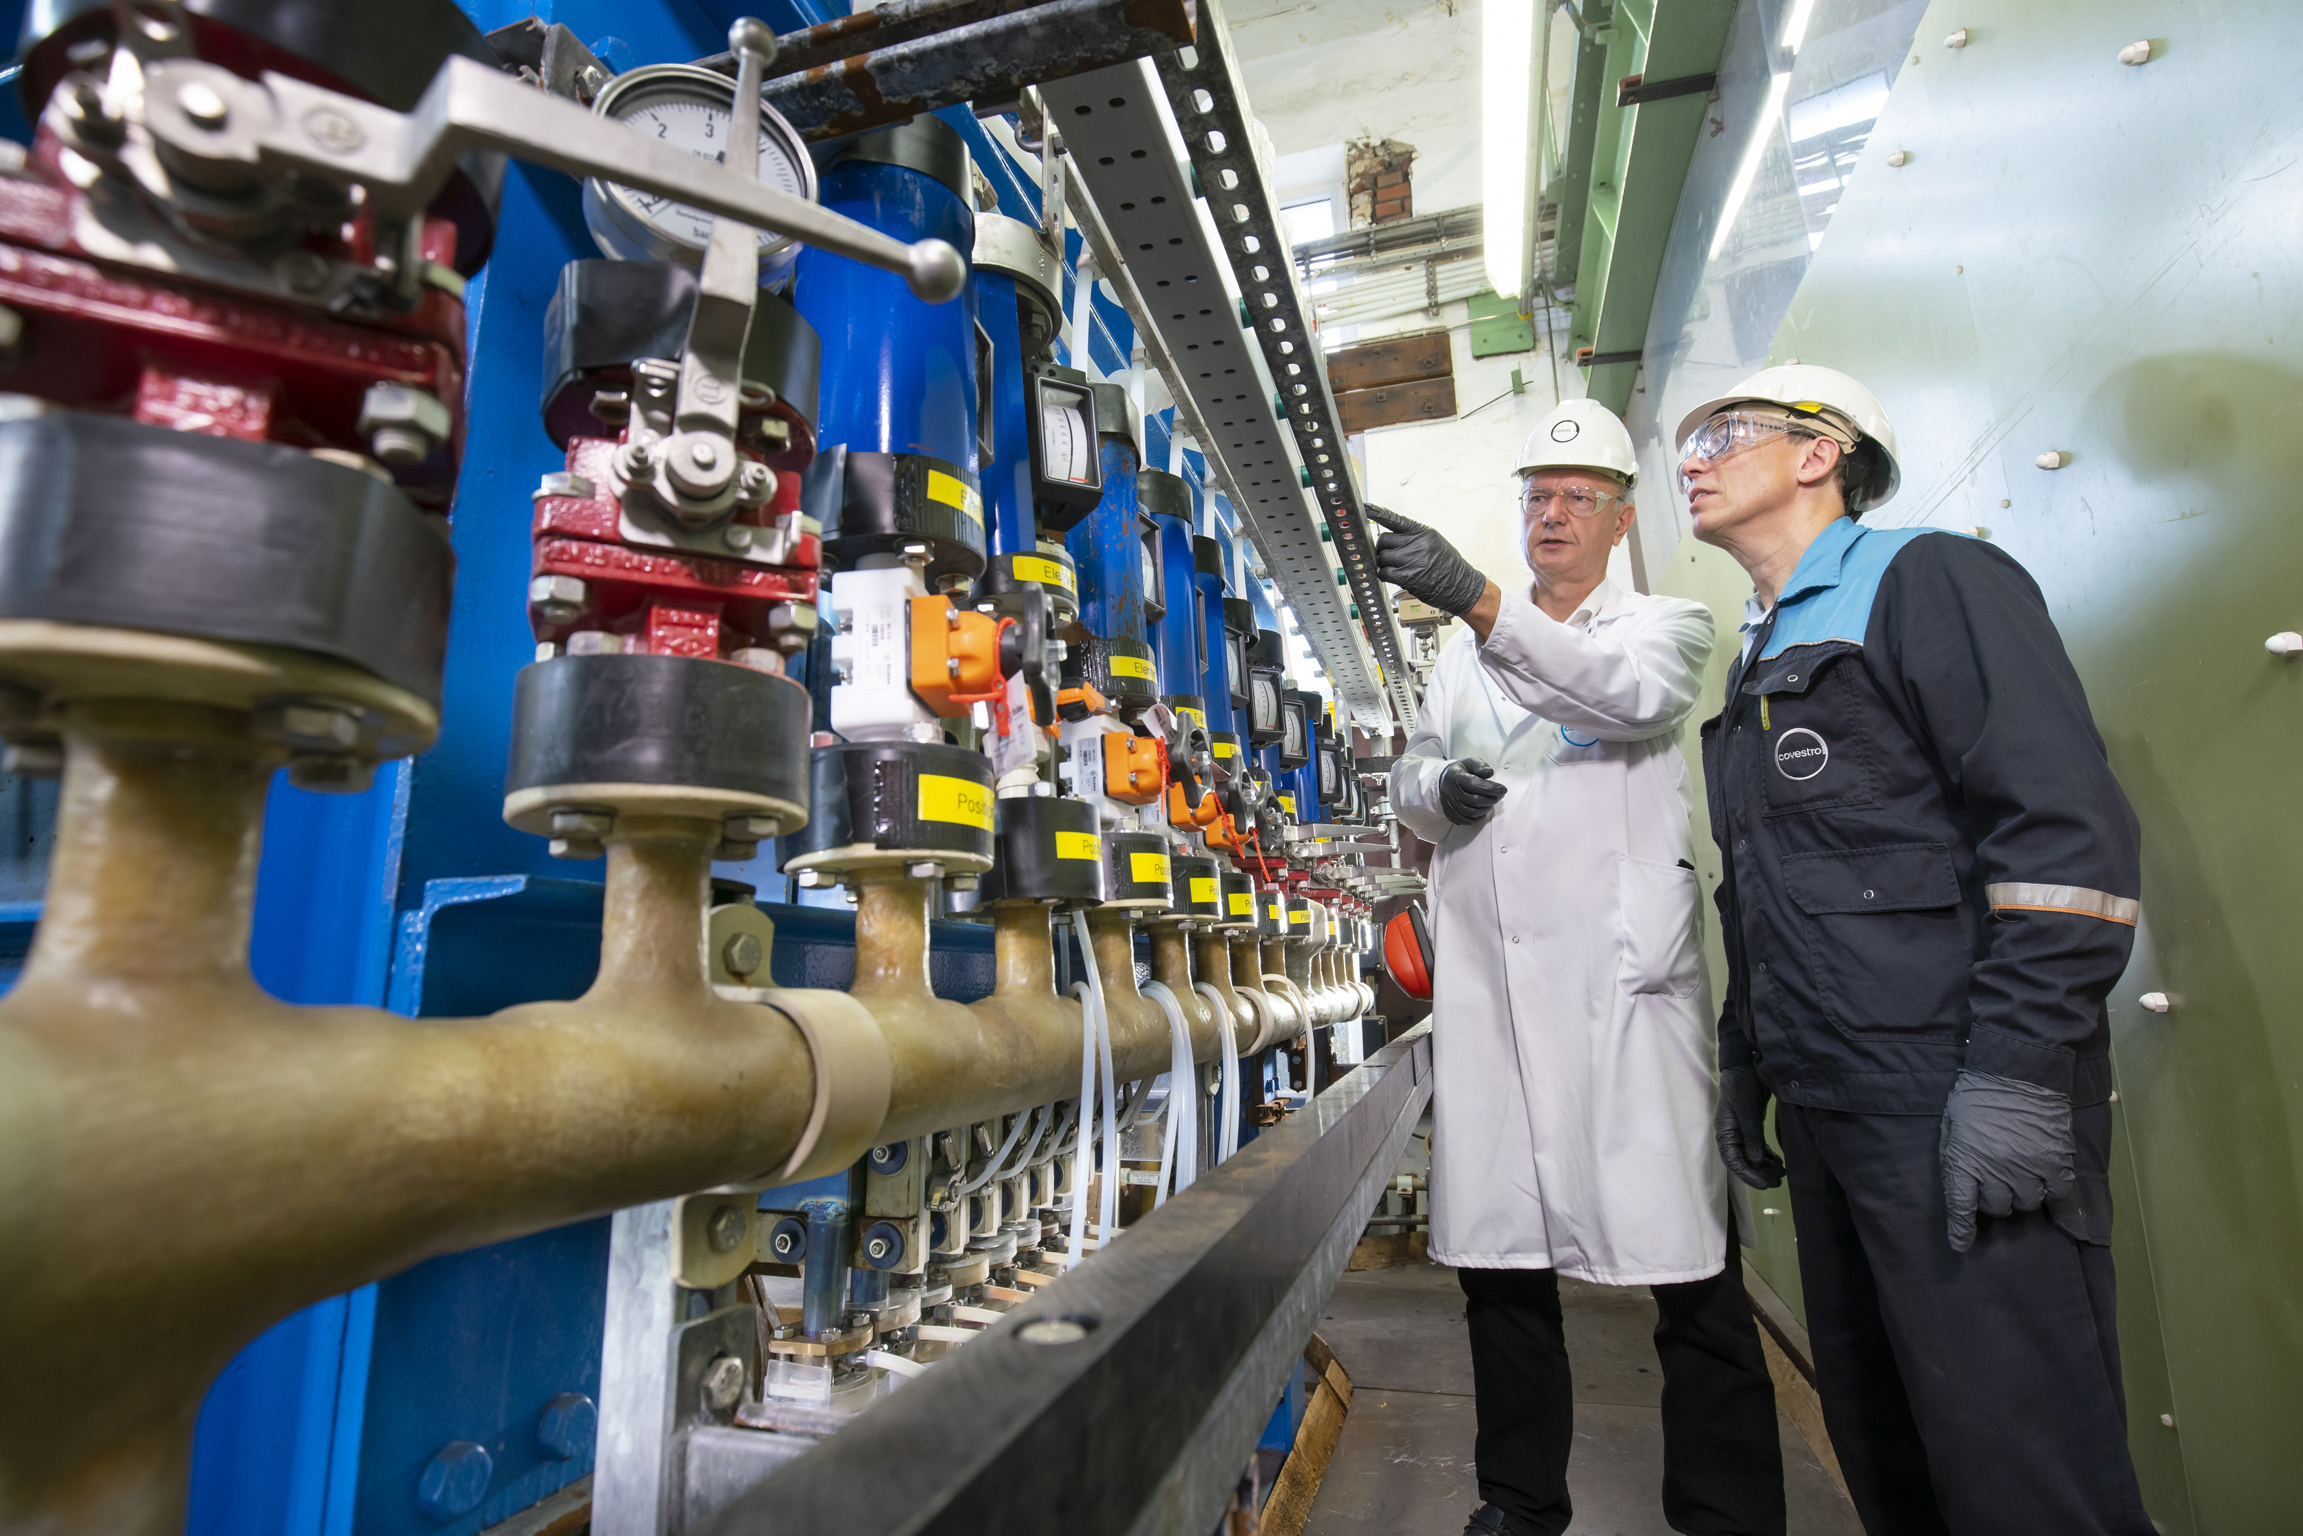 Two Covestro employees inspect a demonstration plant during a planned downtime in Leverkusen, Germany. (Source: Covestro)